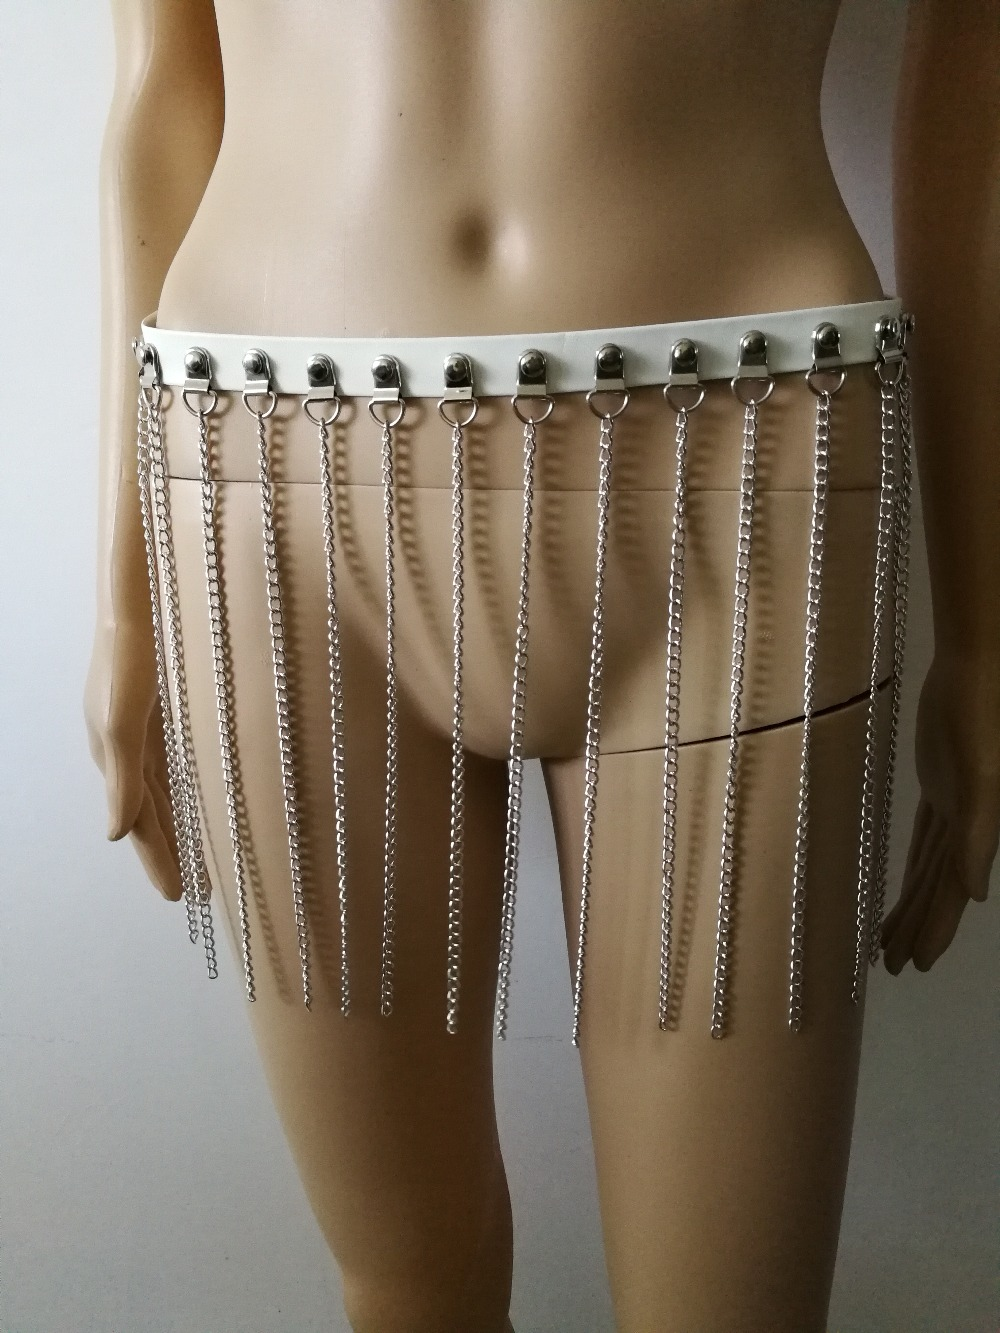 New Fashion Style WRB1043 Women White Leather Harness Bondage Beach Leather Waist Belly Silver Chains Belly Leather Jewelry